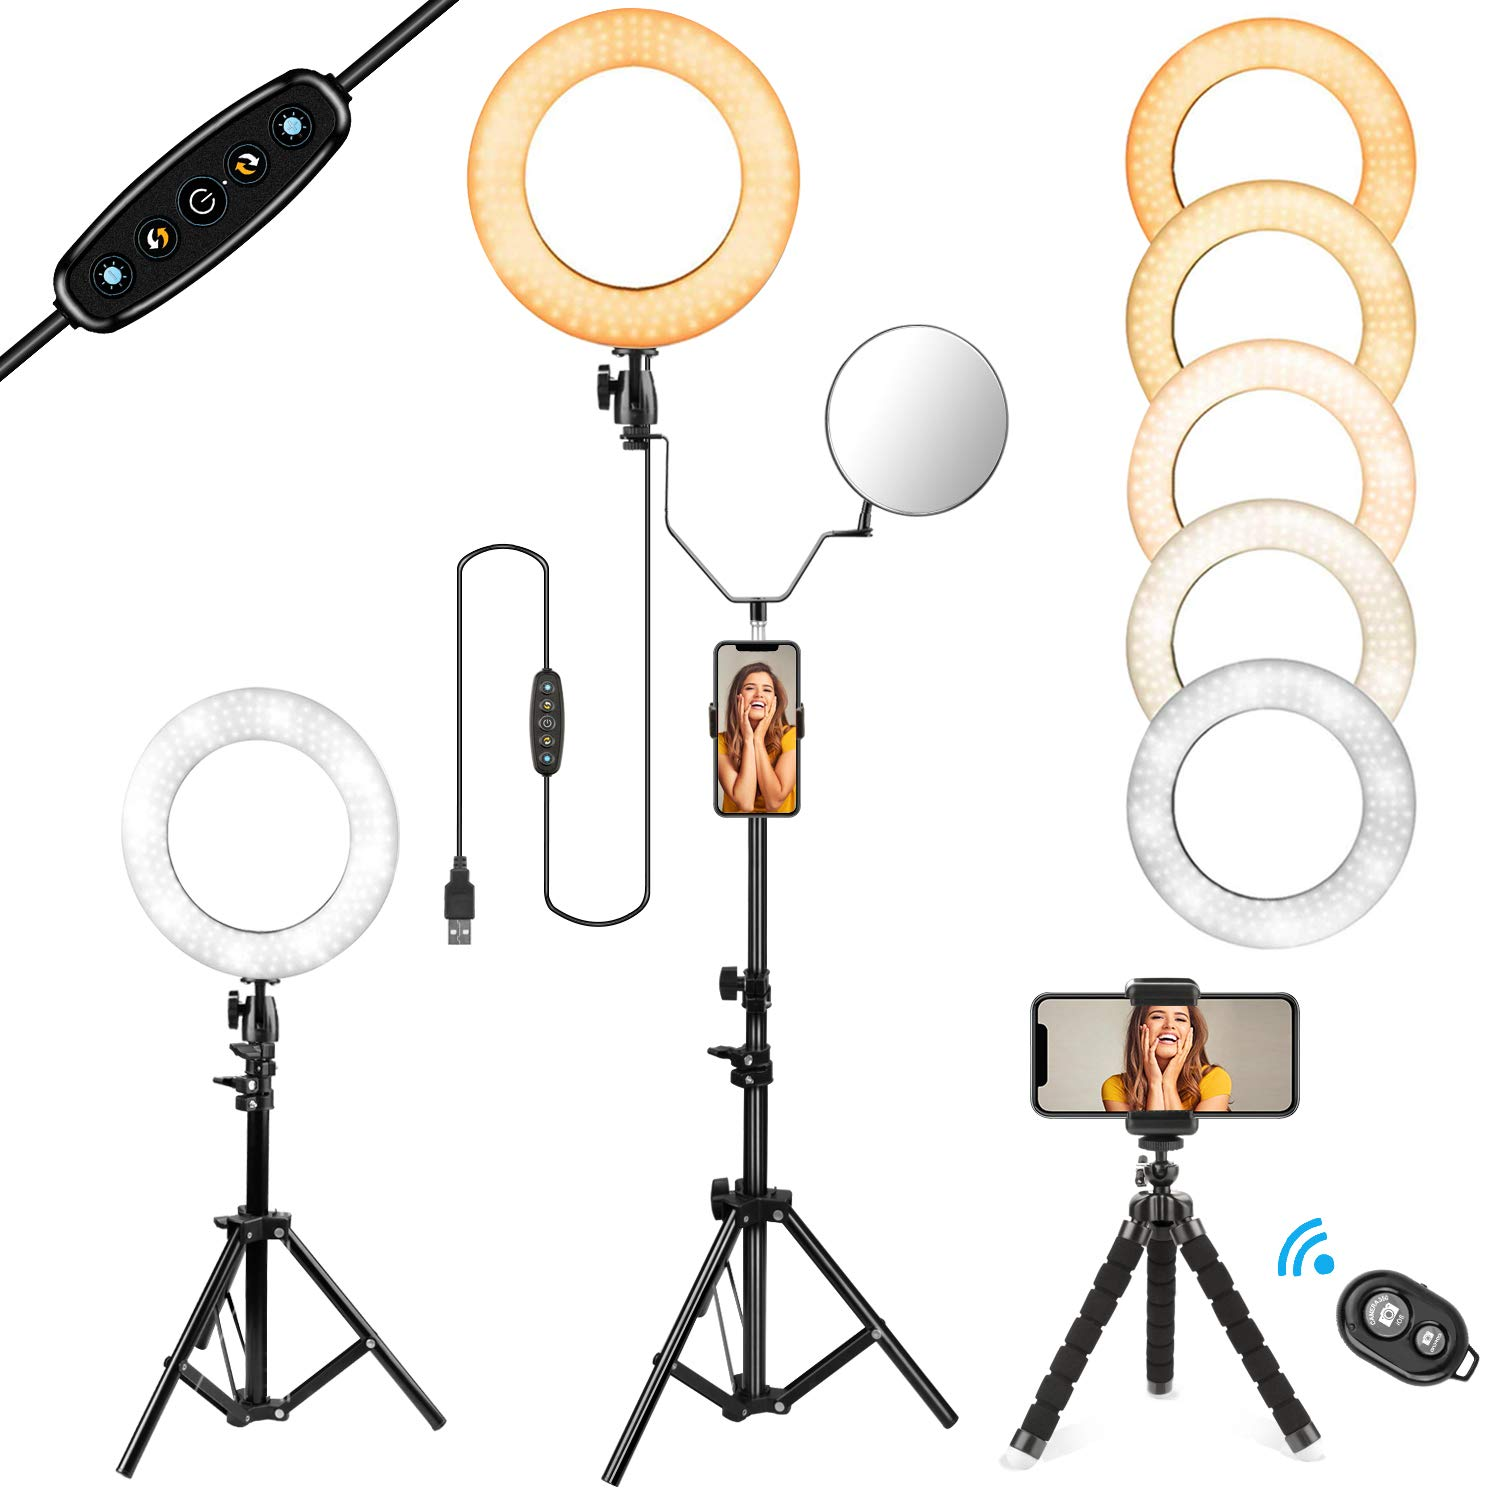 10'' Selfie Ring Light with Stand and Phone Holder for Makeup/Live Stream, Includes a Small Flexible Tripod Stand, Perfect for YouTube Video Shooting/Vlogs/Desktop, Compatible with iPhone Android Phone by KAQINU